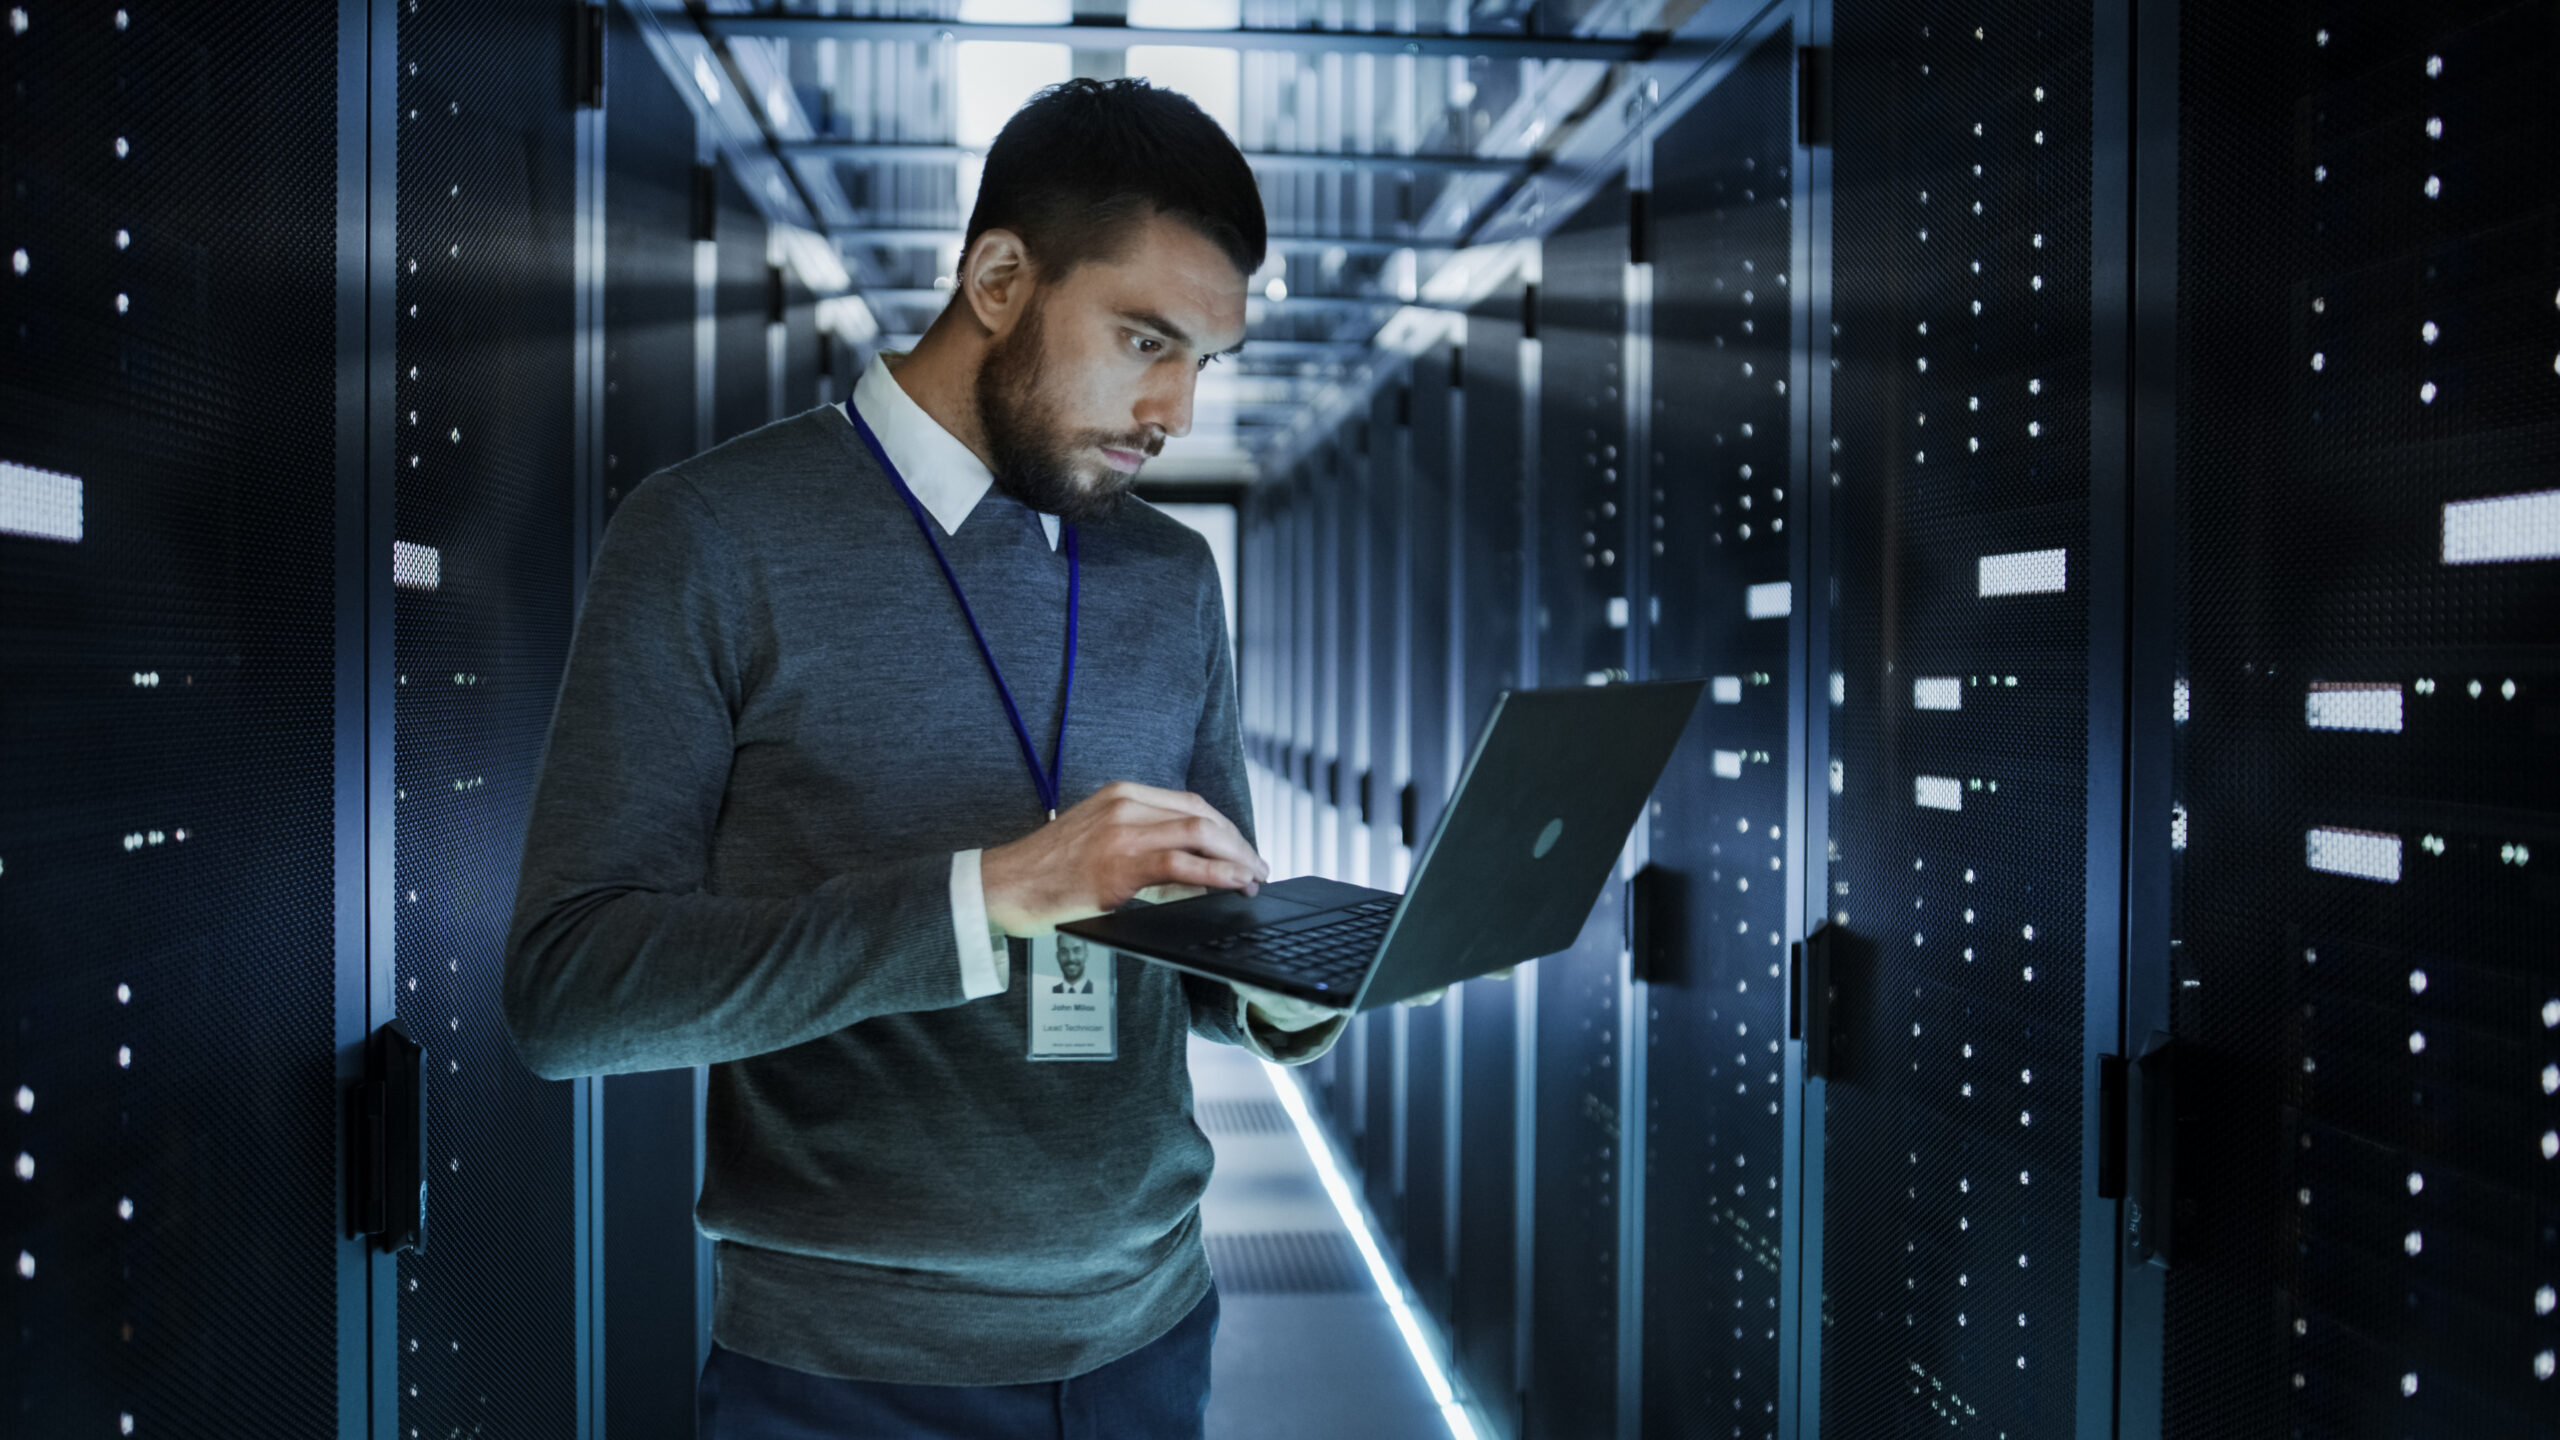 The Job Security Myth in the Technological Era